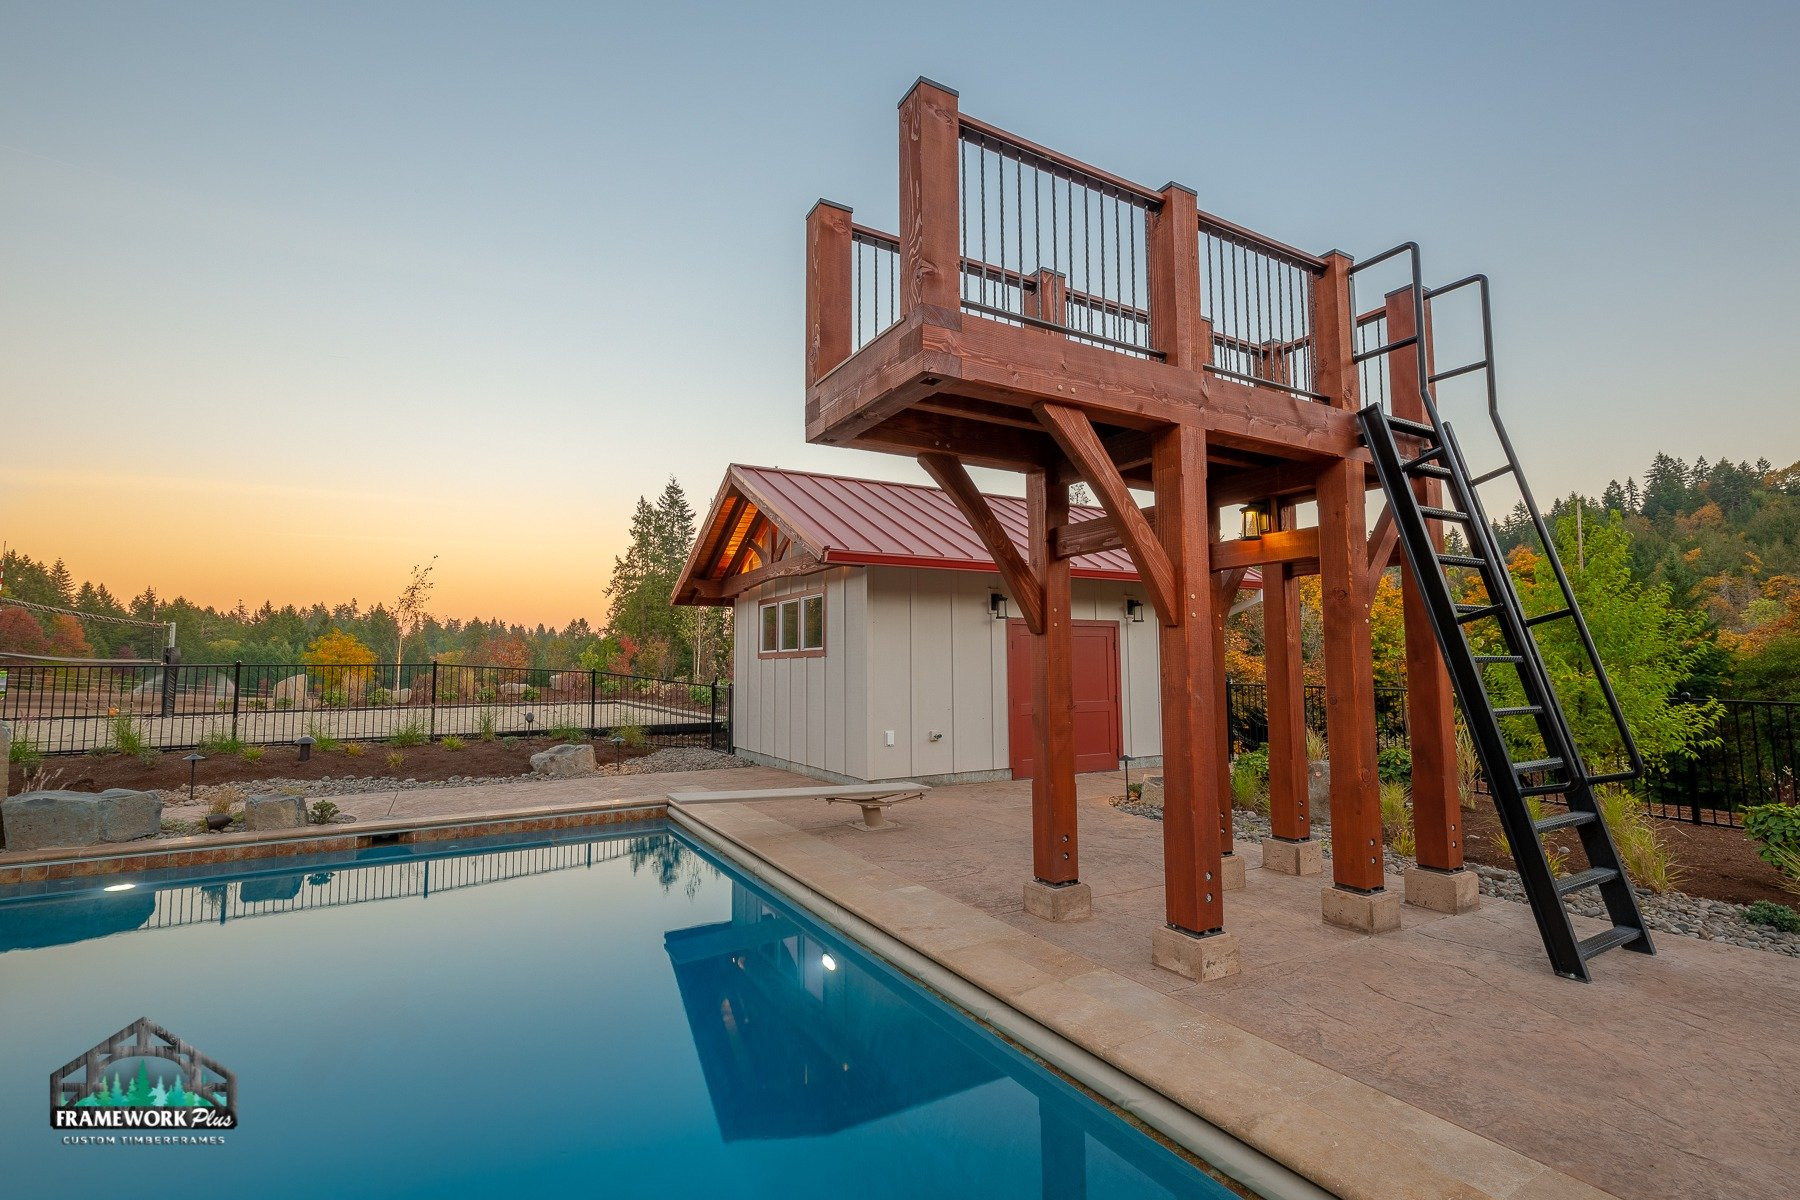 Willamette Valley, OR Diving Board